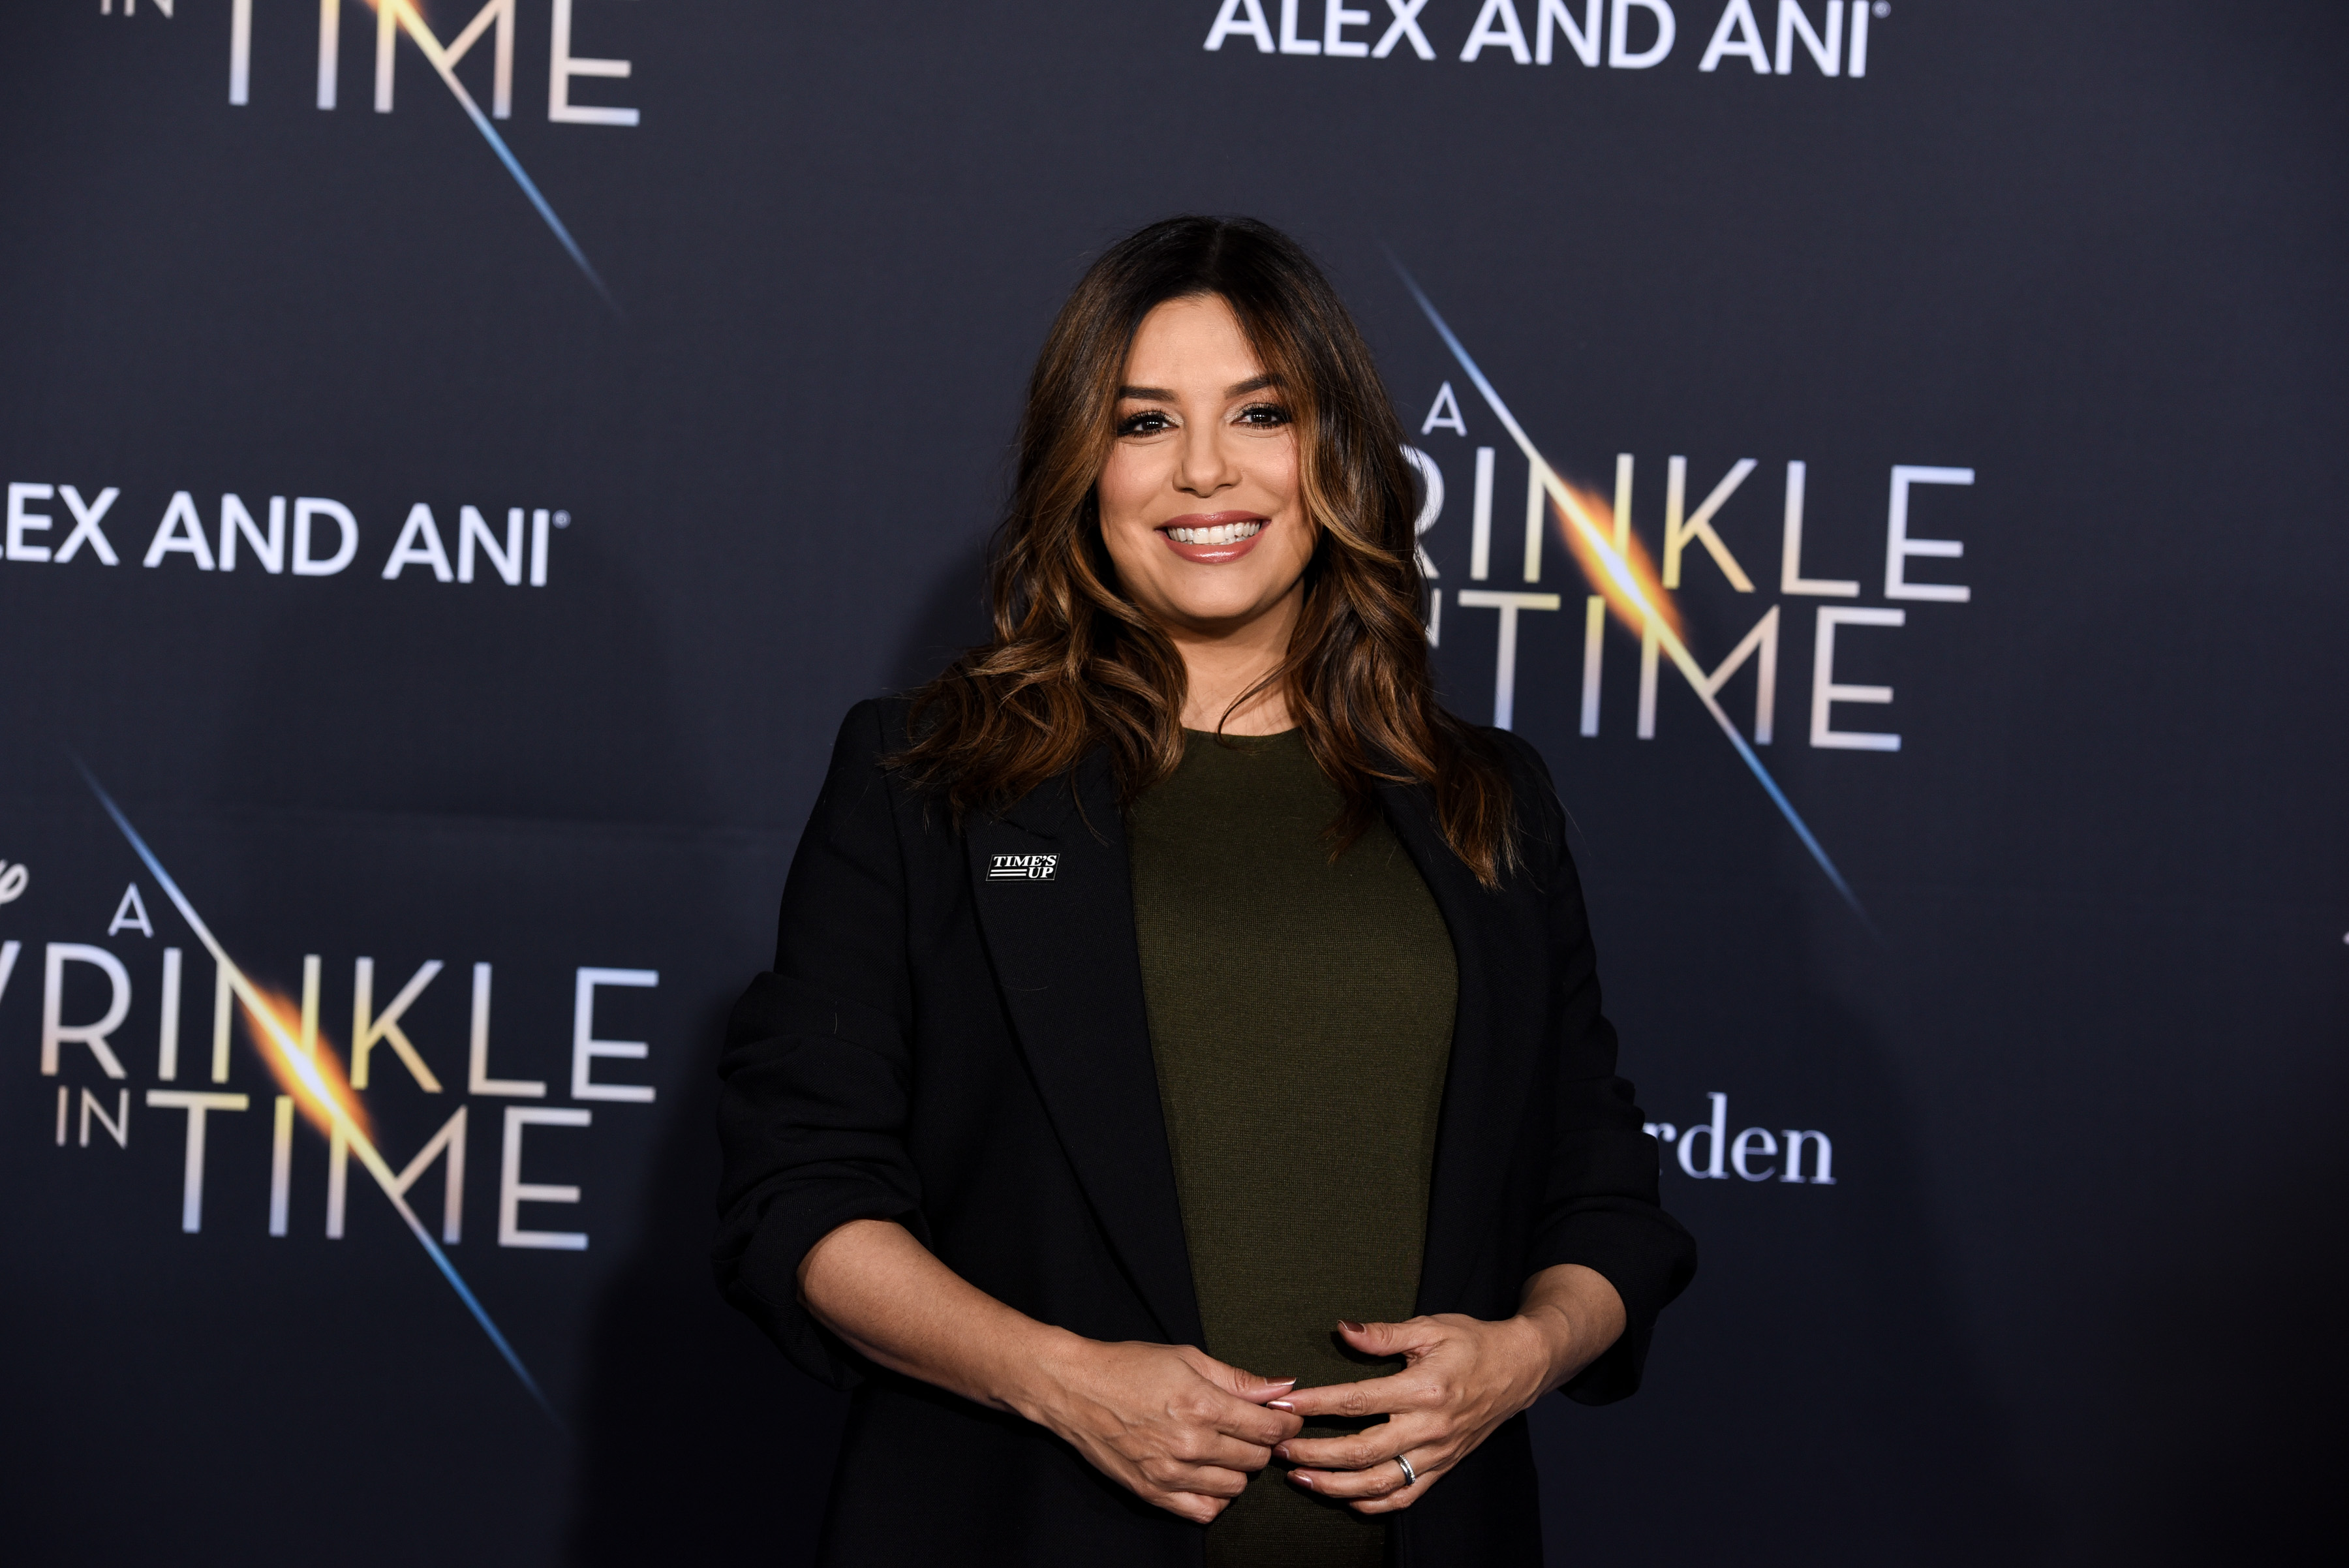 Eva Longoria attends Premiere Of Disney's  A Wrinkle In Time  - Arrivals on February 26, 2018 in Los Angeles, California.